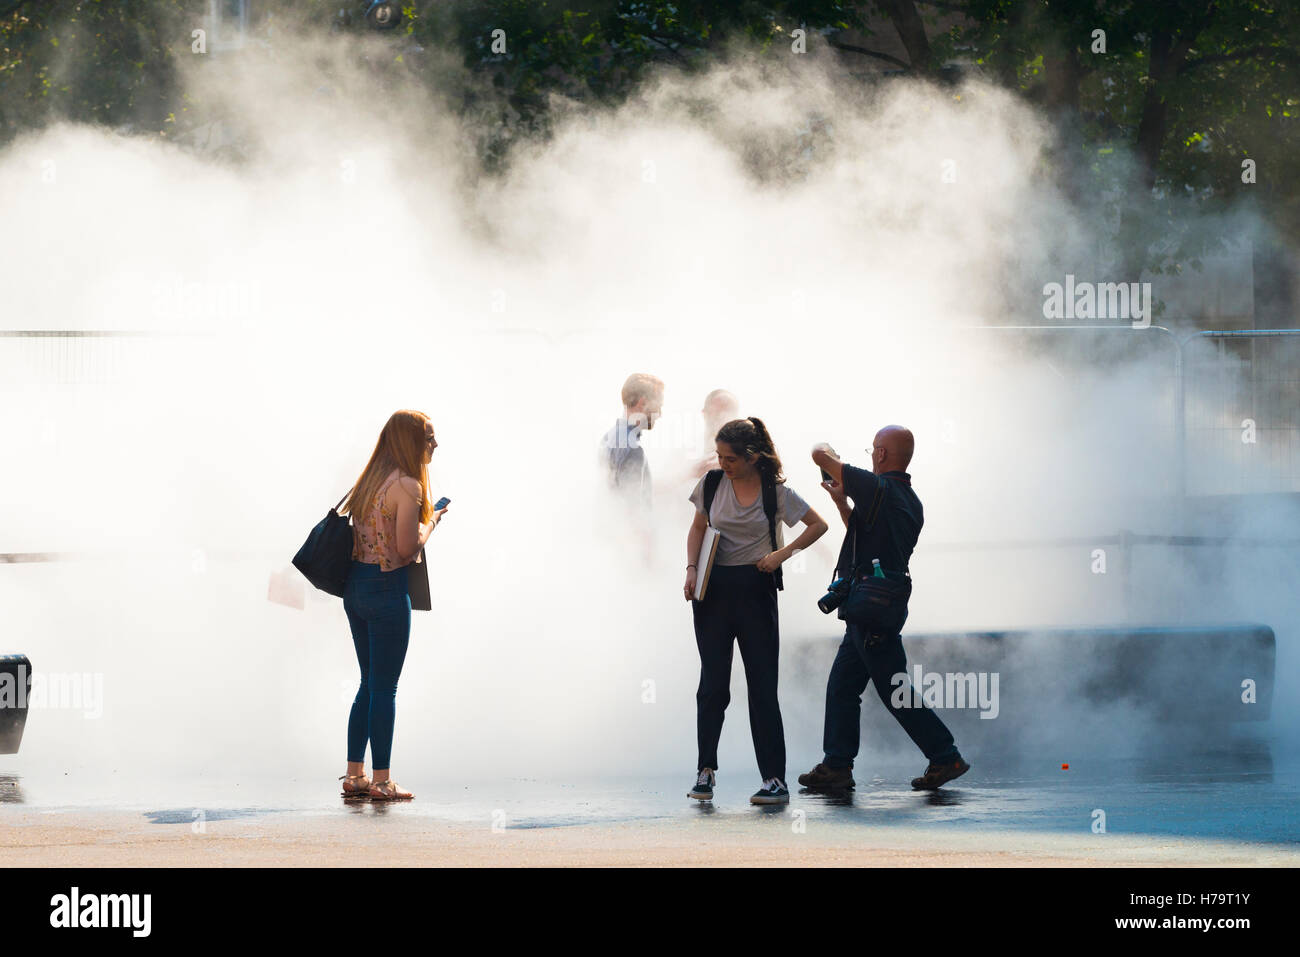 London Southbank Tate Modern water mist work of art feature group of people take photo photos in mist - Stock Image